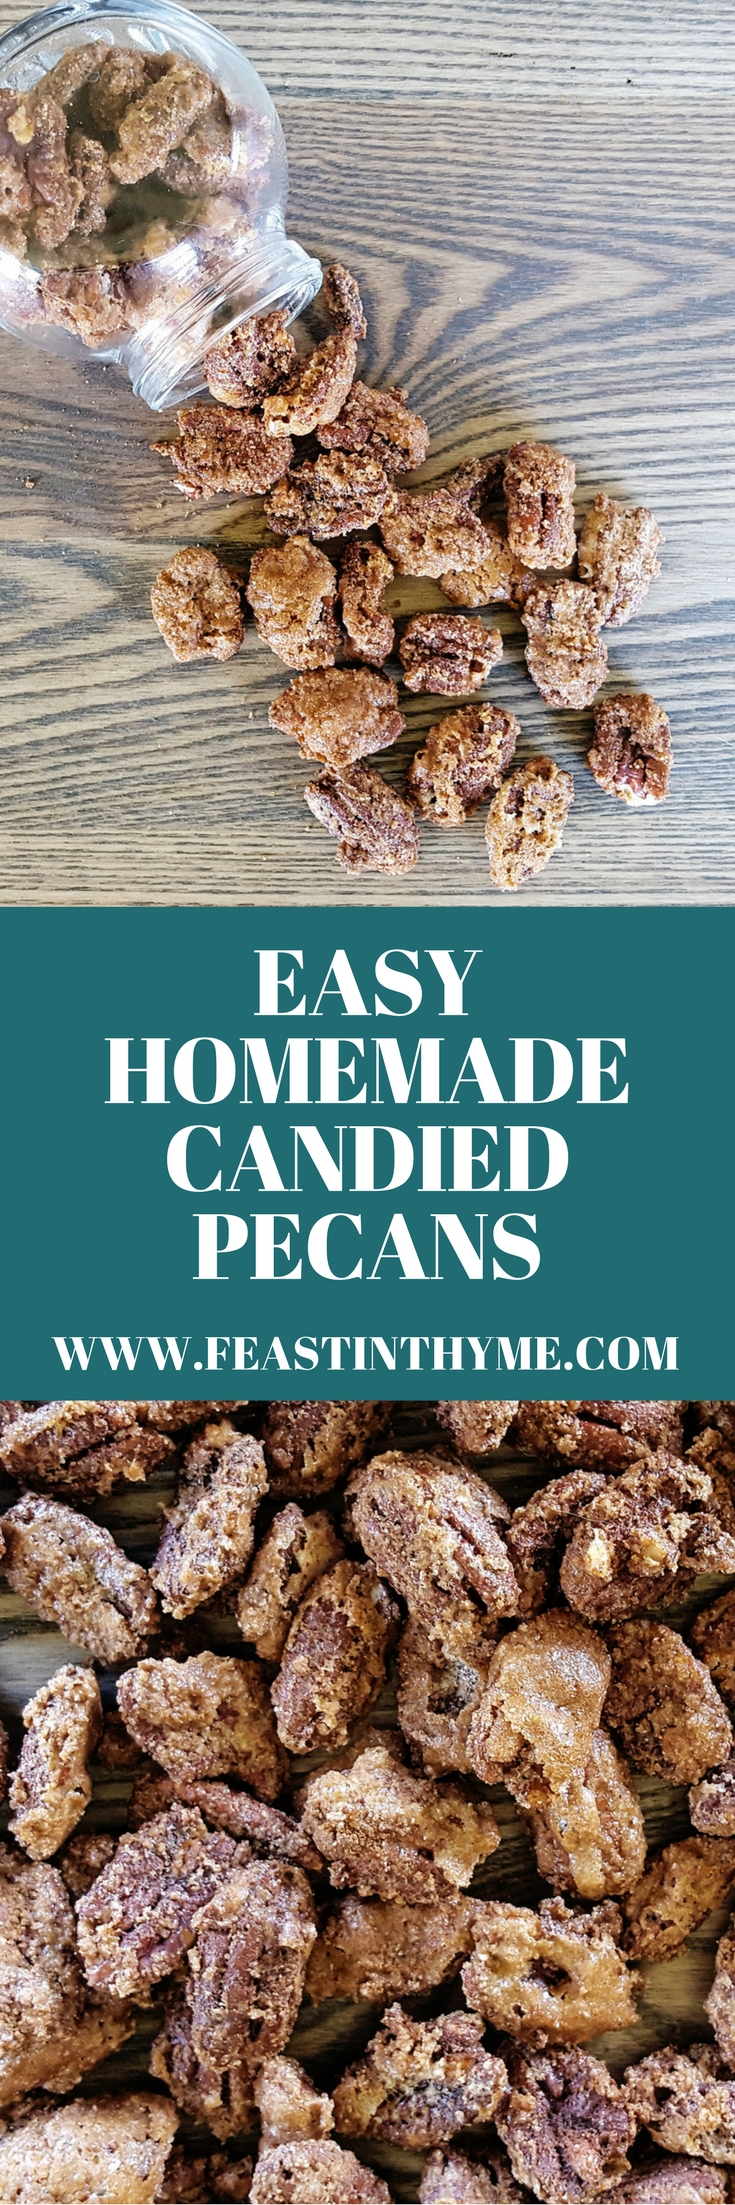 Homemade Candied Pecans are a quick & easy sweet treat full of warm cinnamon & spice – a perfect snack or DIY holiday gift! | FeastInThyme.com